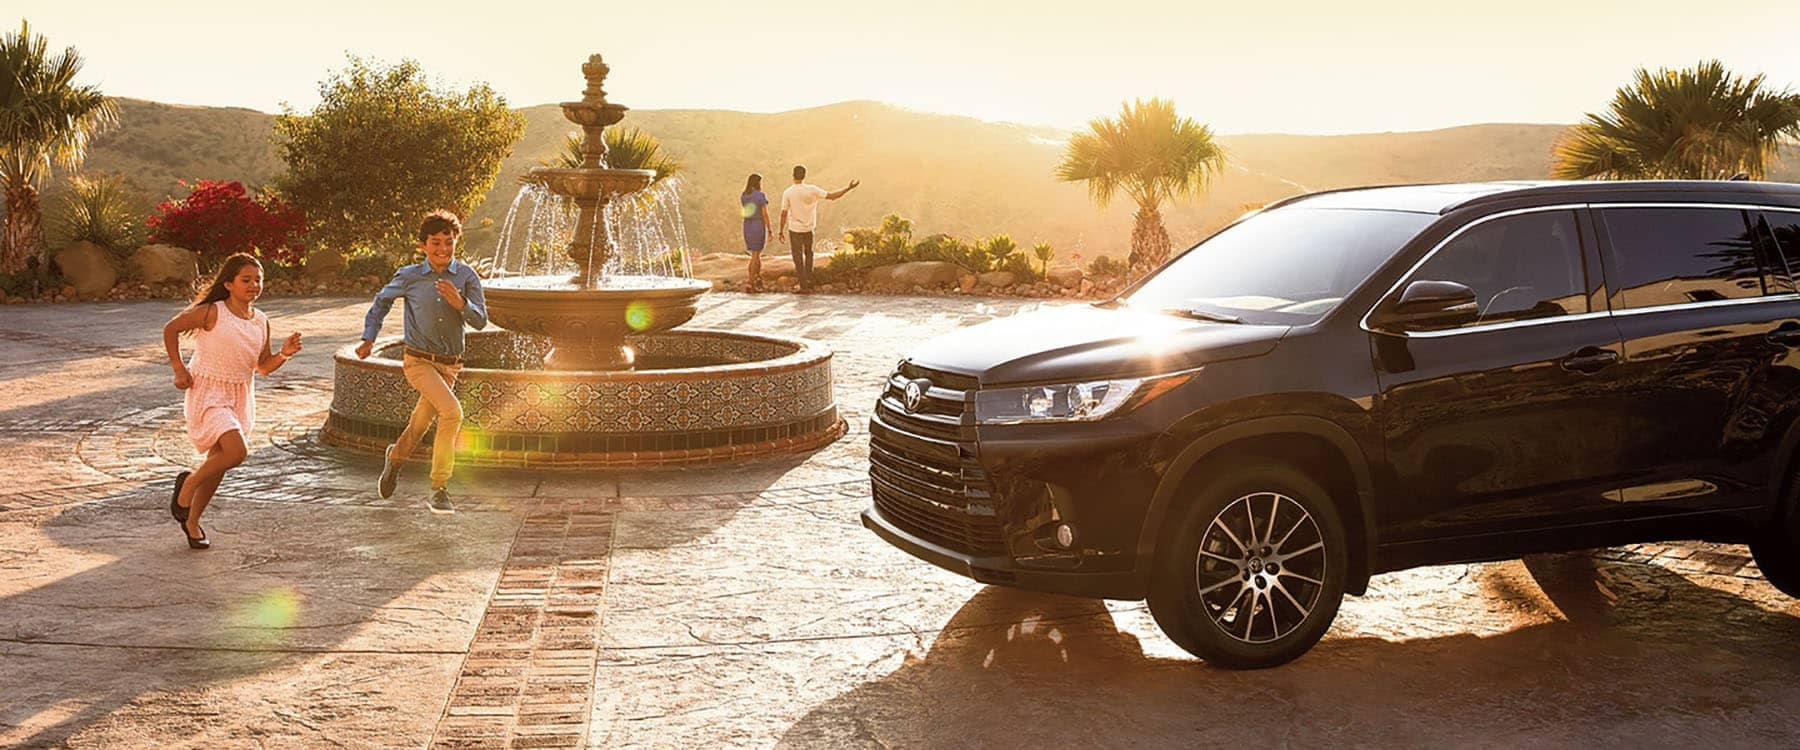 Toyota Highlander Owners Manual: Past record